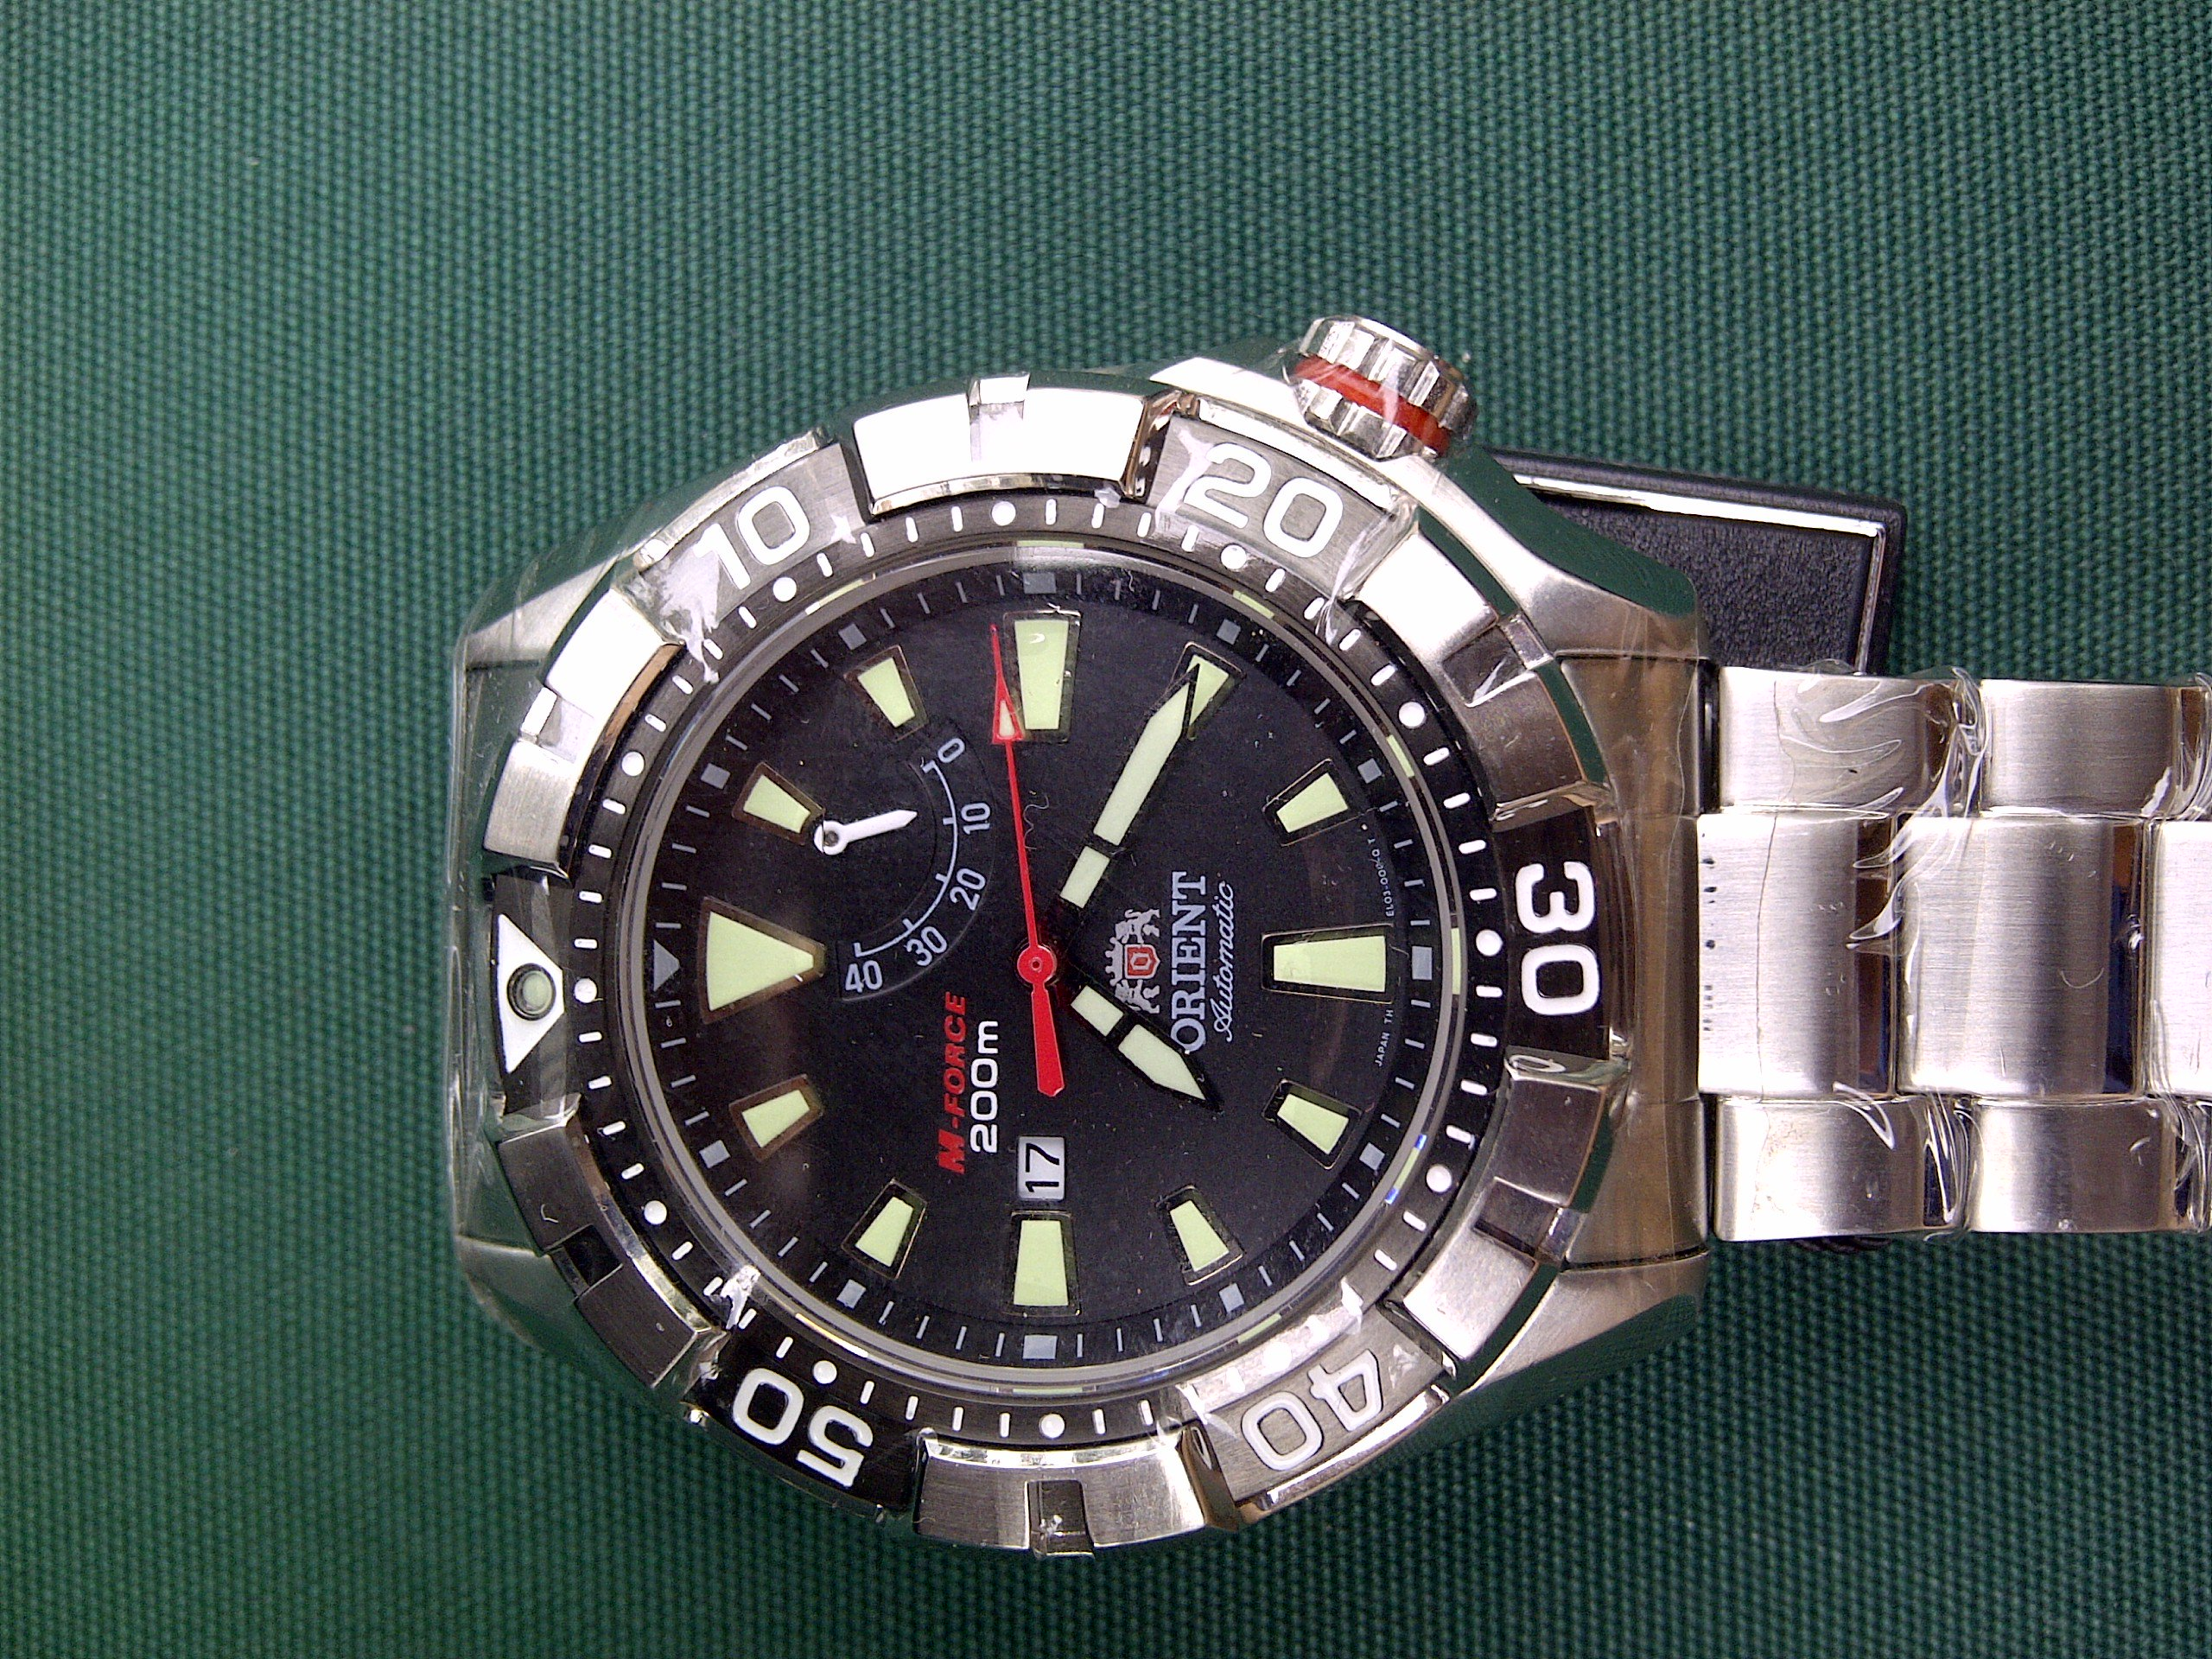 FOR SALE: ORIENT M-FORCE